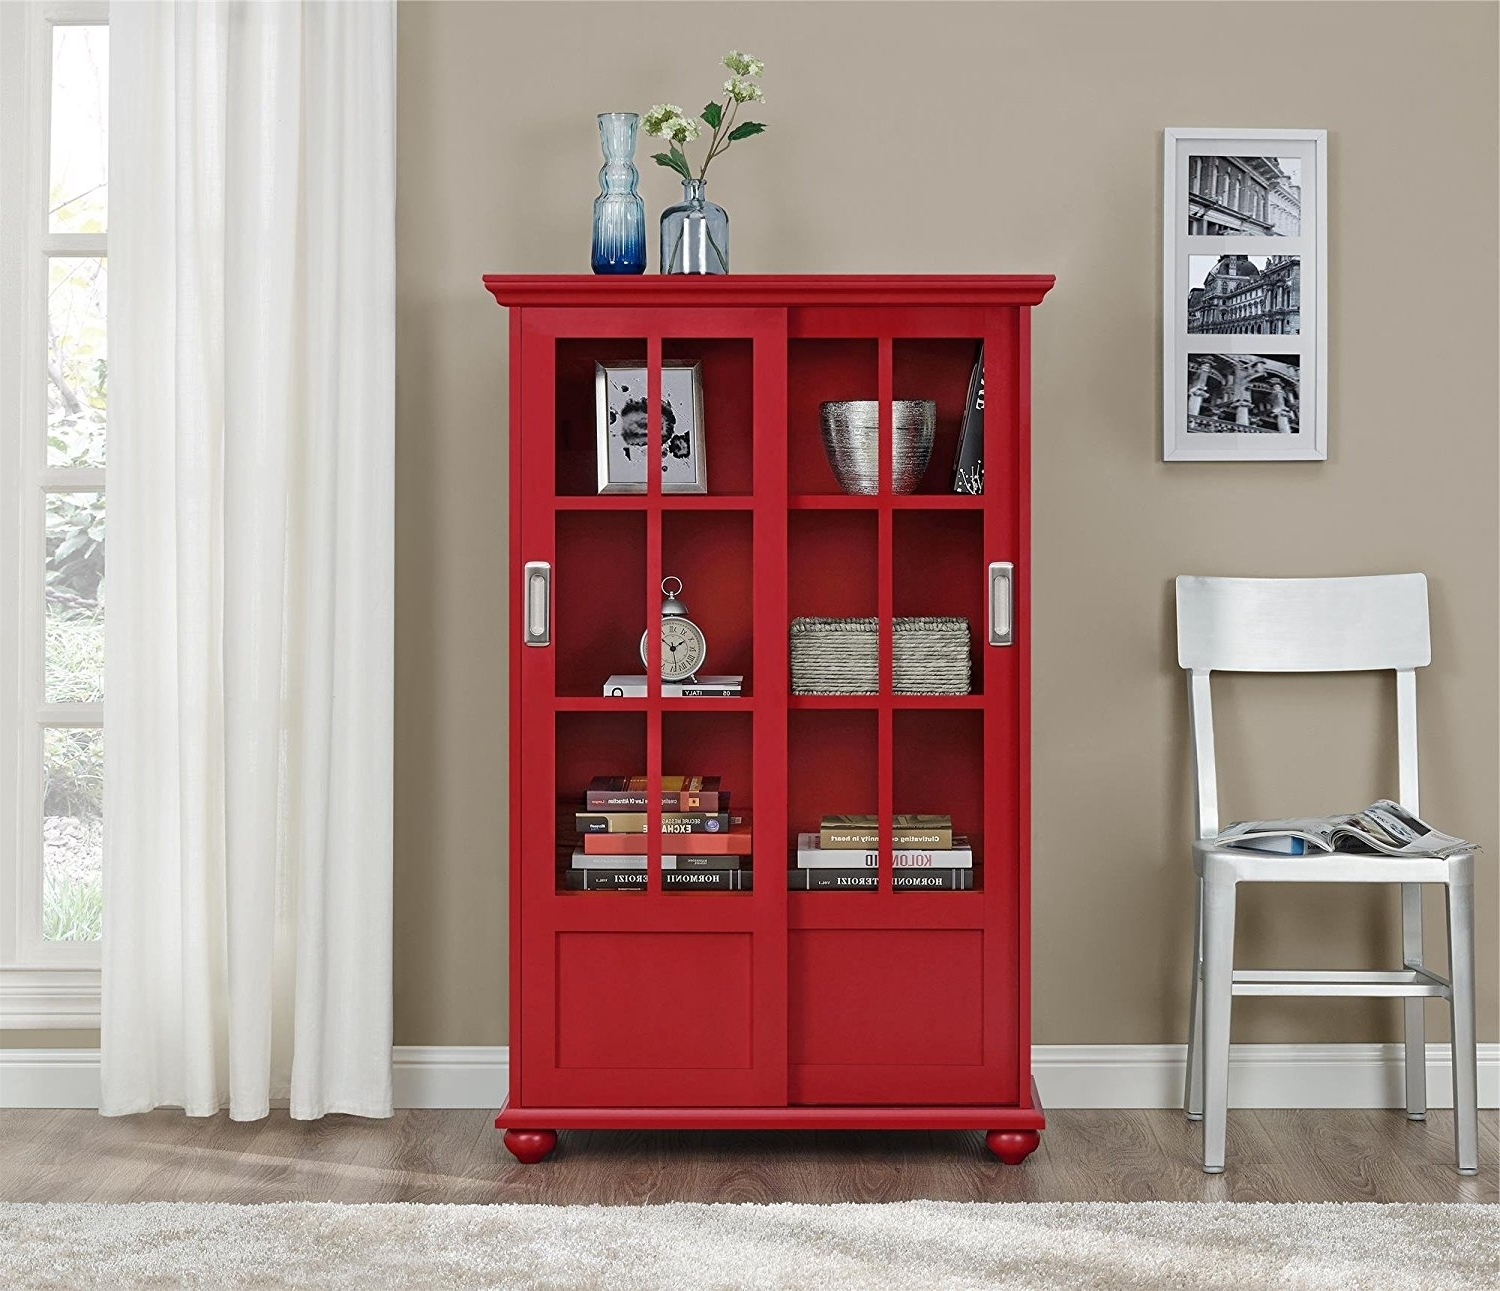 Most Recent Amazon: Ameriwood Home Aaron Lane Bookcase With Sliding Glass Within Red Bookcases (View 1 of 15)